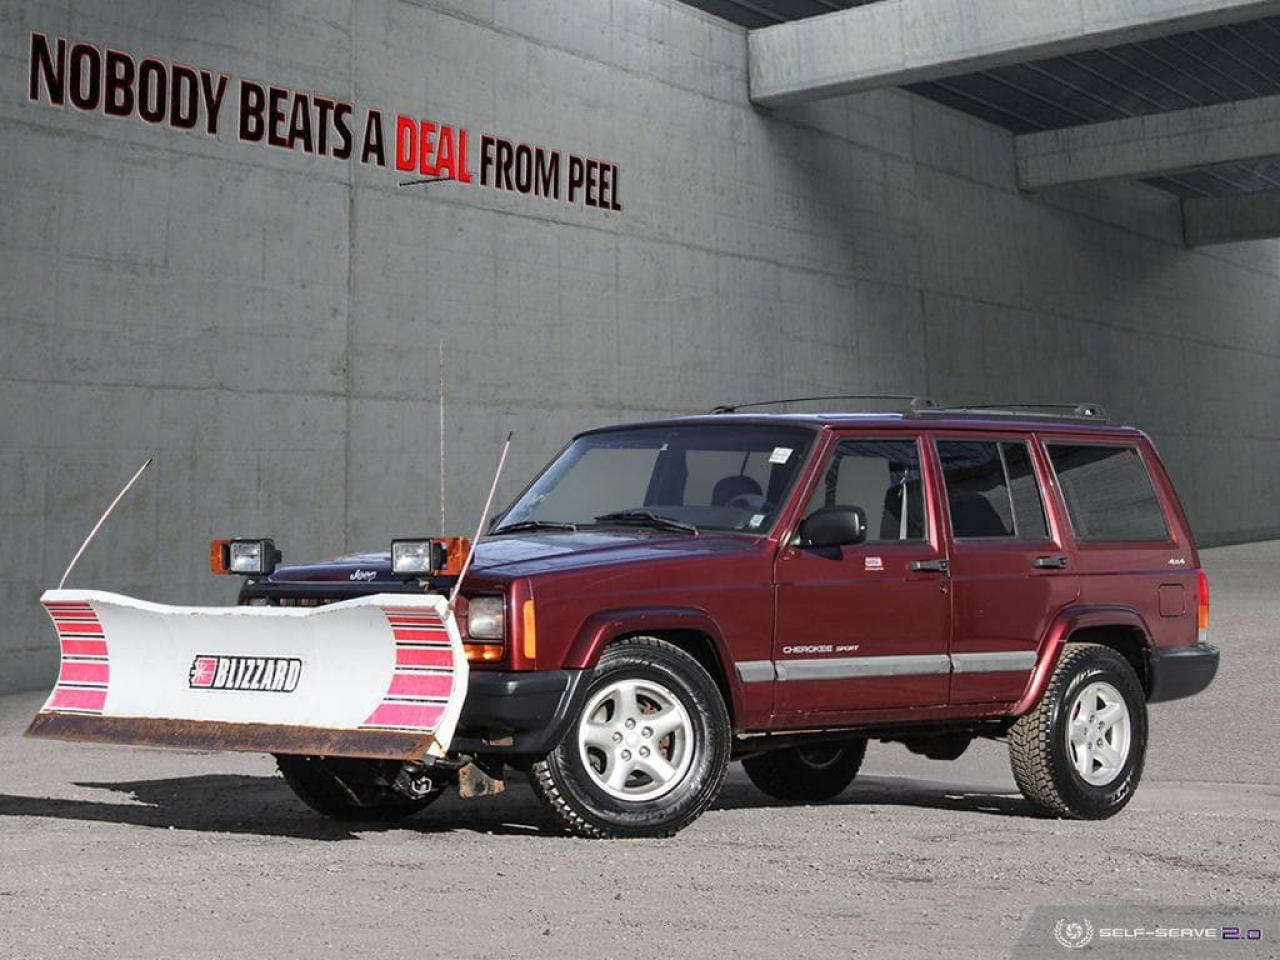 used 2000 jeep cherokee sport blizzard snow plow w remote wintertires com for sale in mississauga ontario carpages ca [ 1024 x 768 Pixel ]